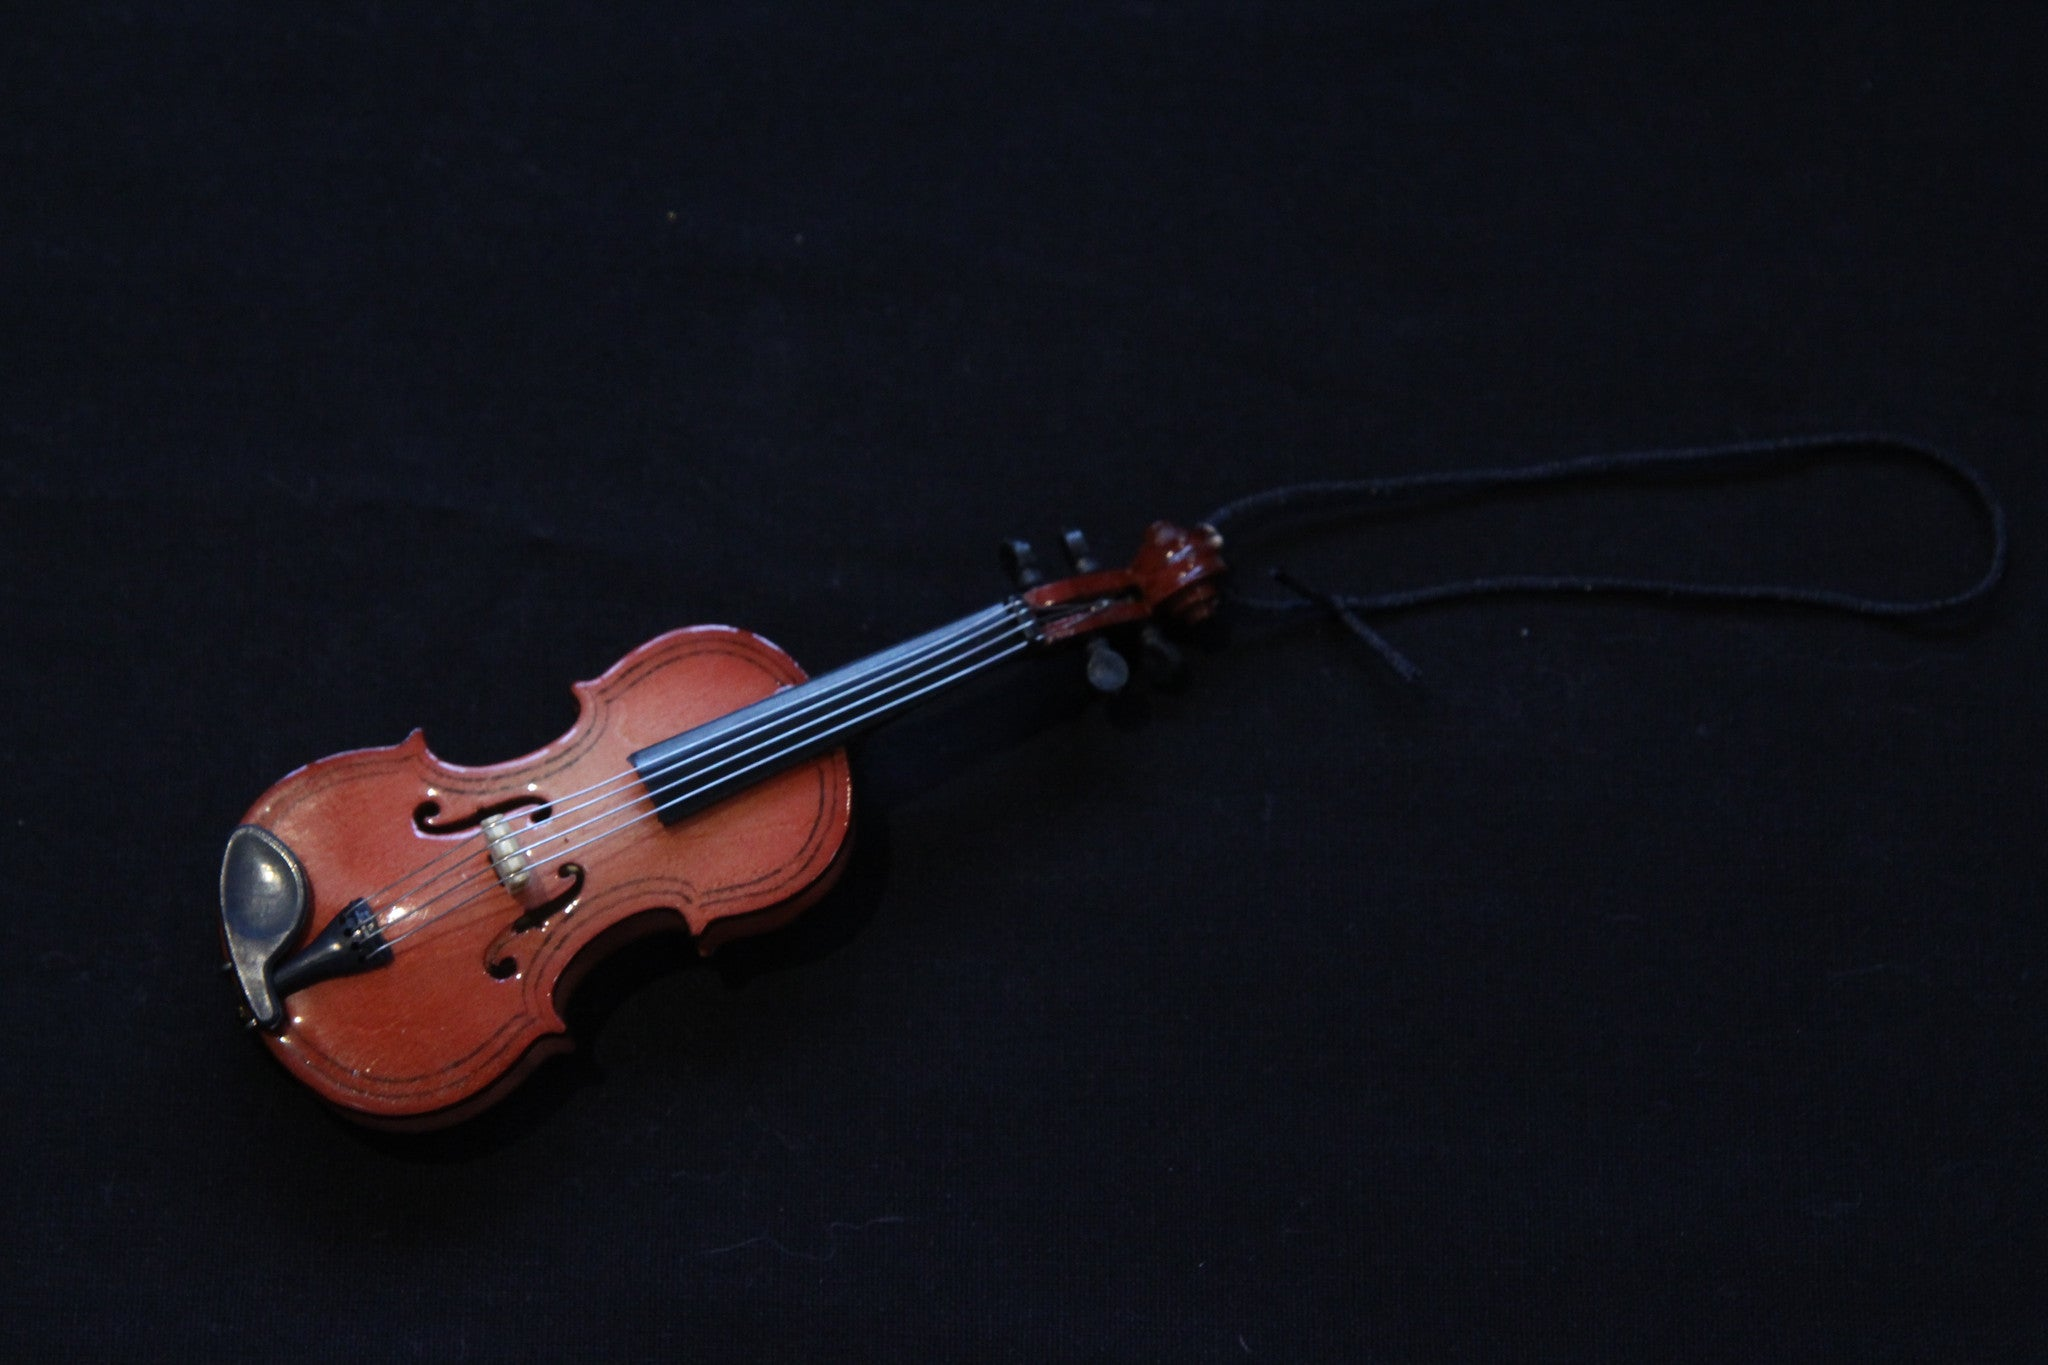 Violin christmas ornaments - Small Violin Christmas Ornament